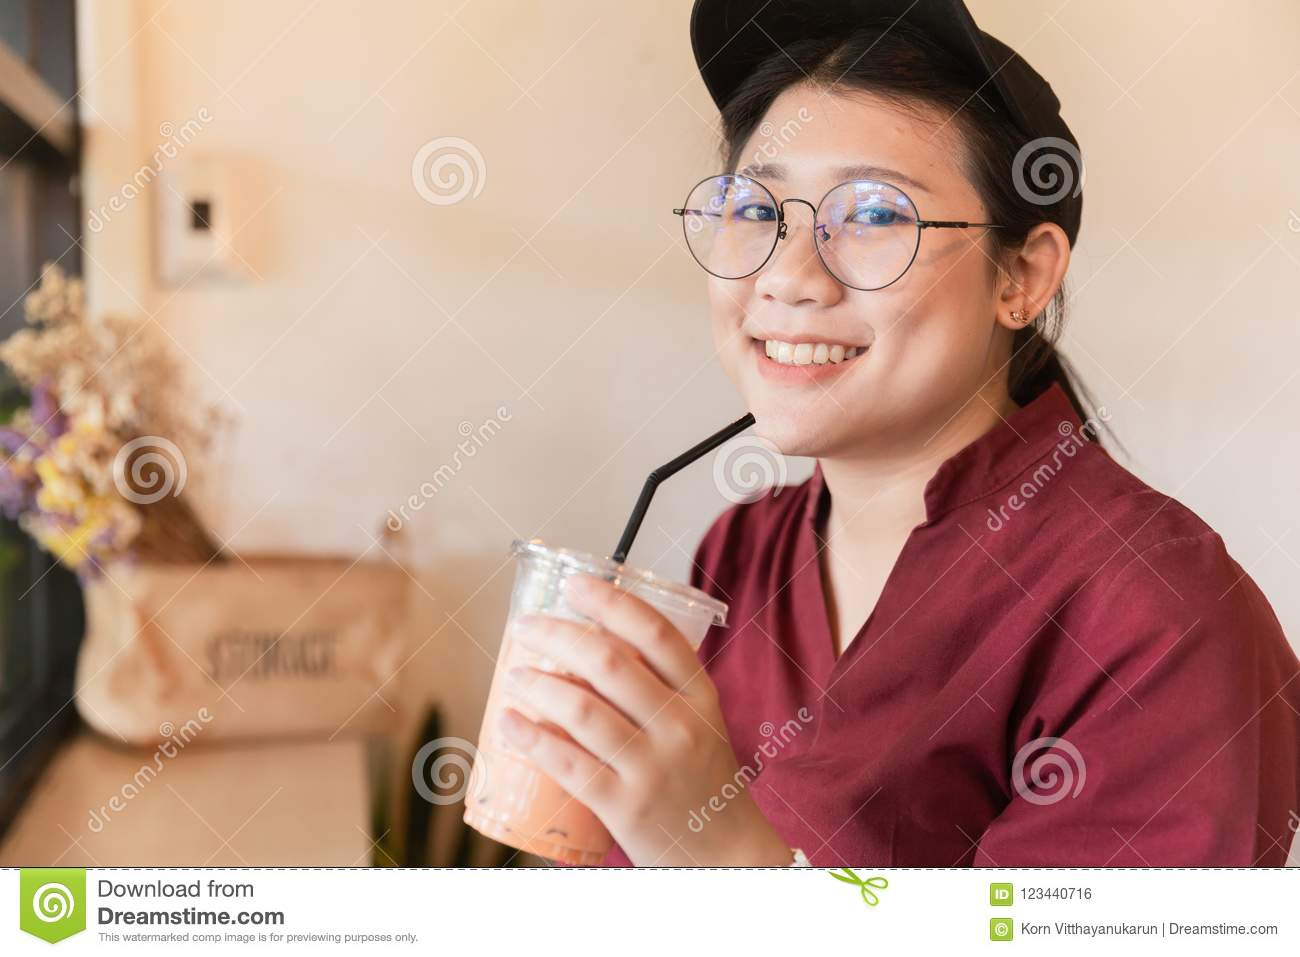 613201f25835 Cute Asian fat plus size girl teen drinking ice coffee using straw in cafe.  More similar stock images